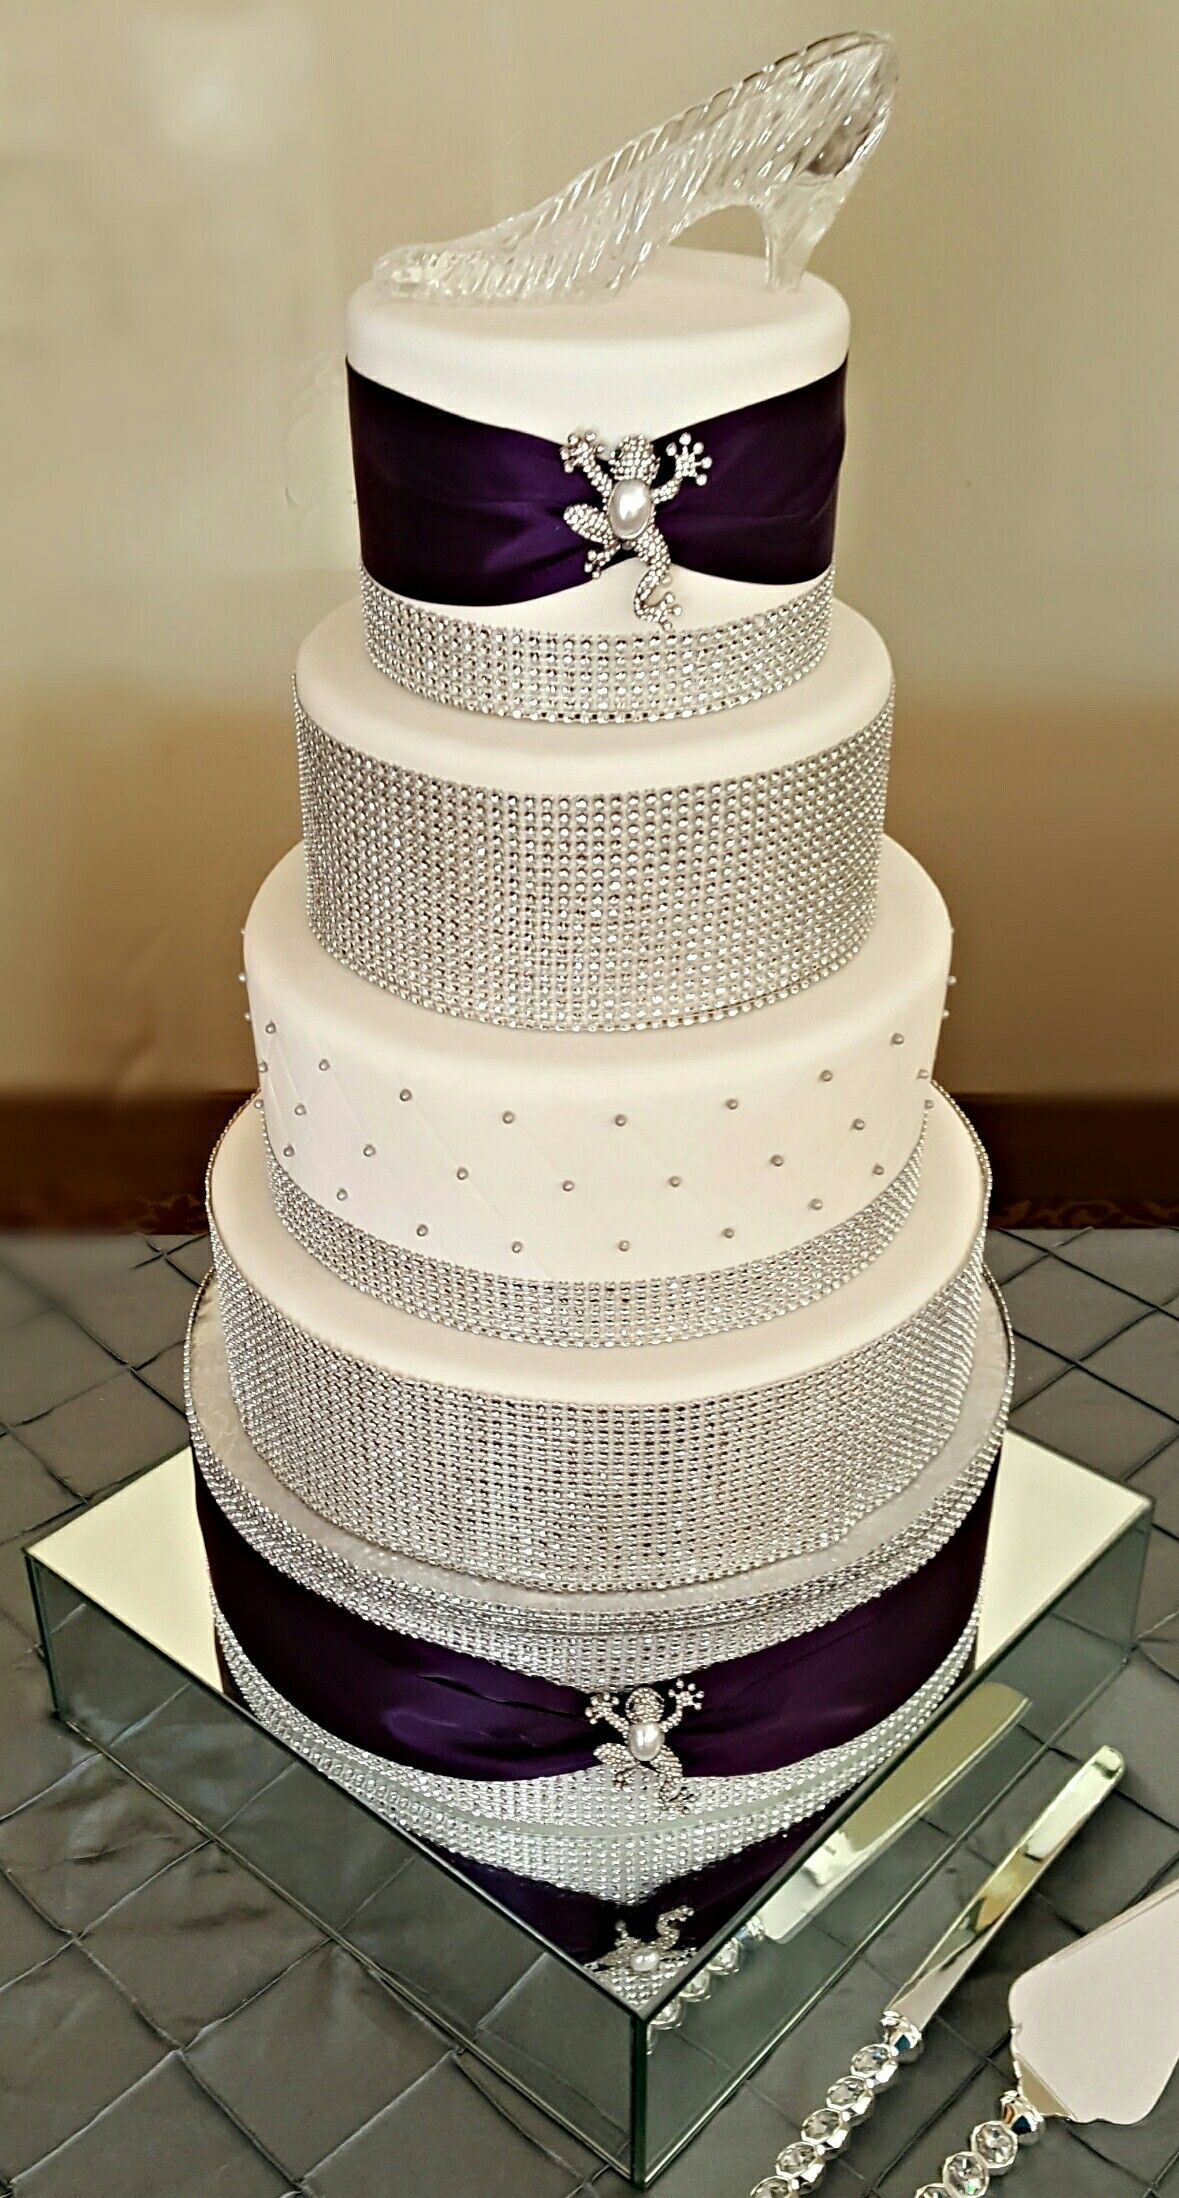 Custom 5 Tier White Fondant 50th Birthday Cake With Royal Purple Ribbons Rhinestone Bling Frog Brooches And Topped A Cinderella Glass Slipper Fit For